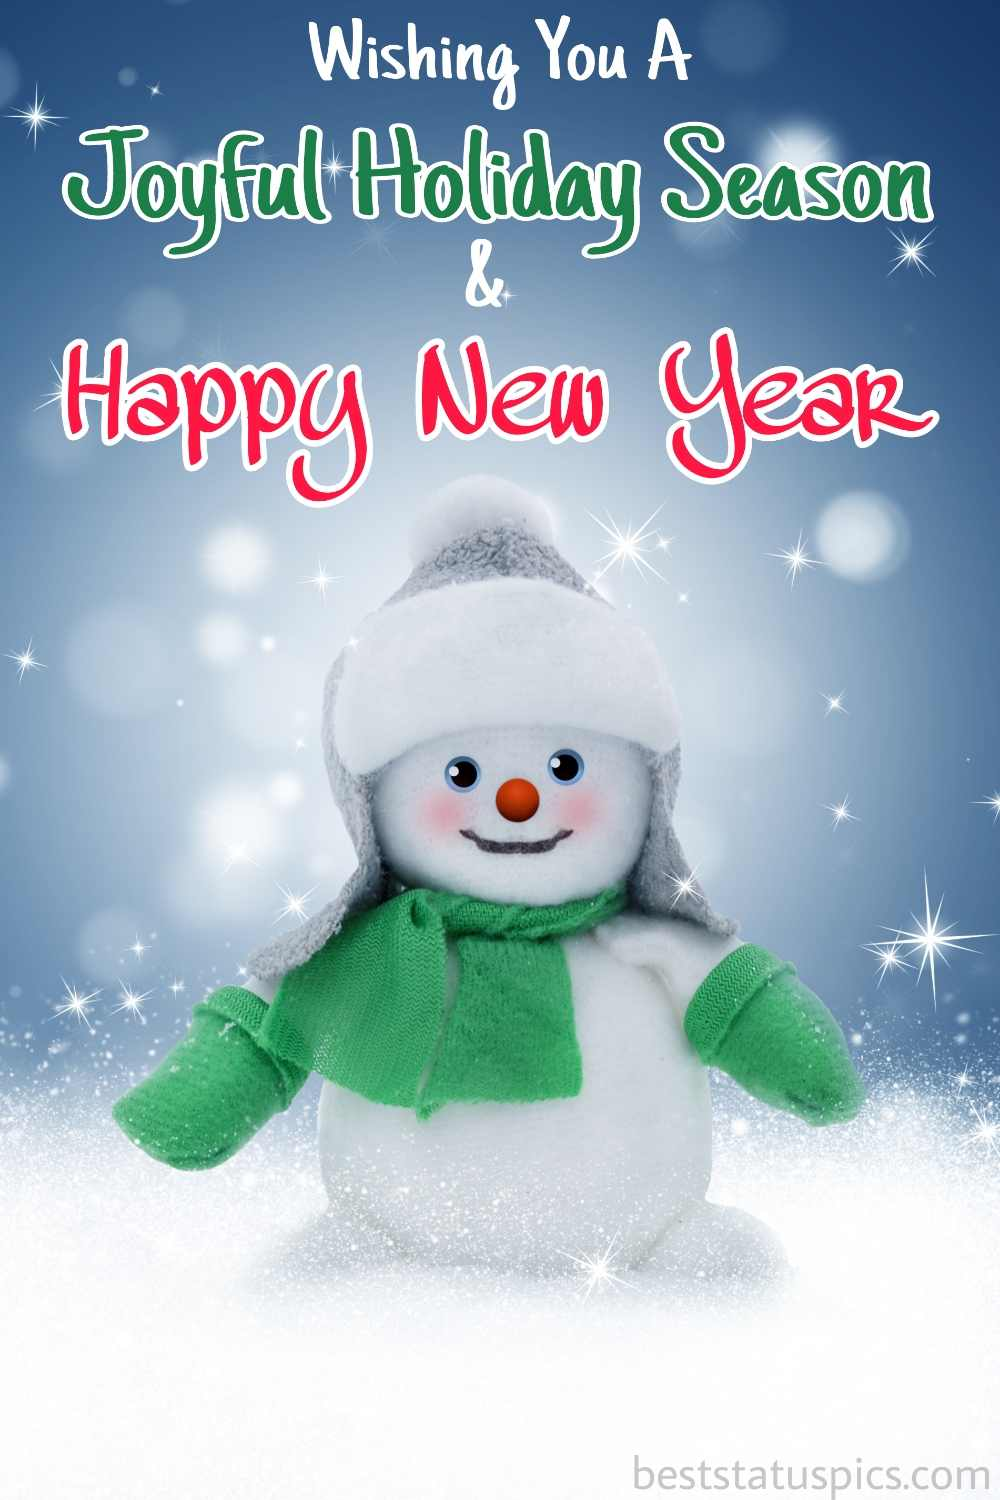 Happy Holidays and Happy New Year 2022 picture with snowman for Instagram story